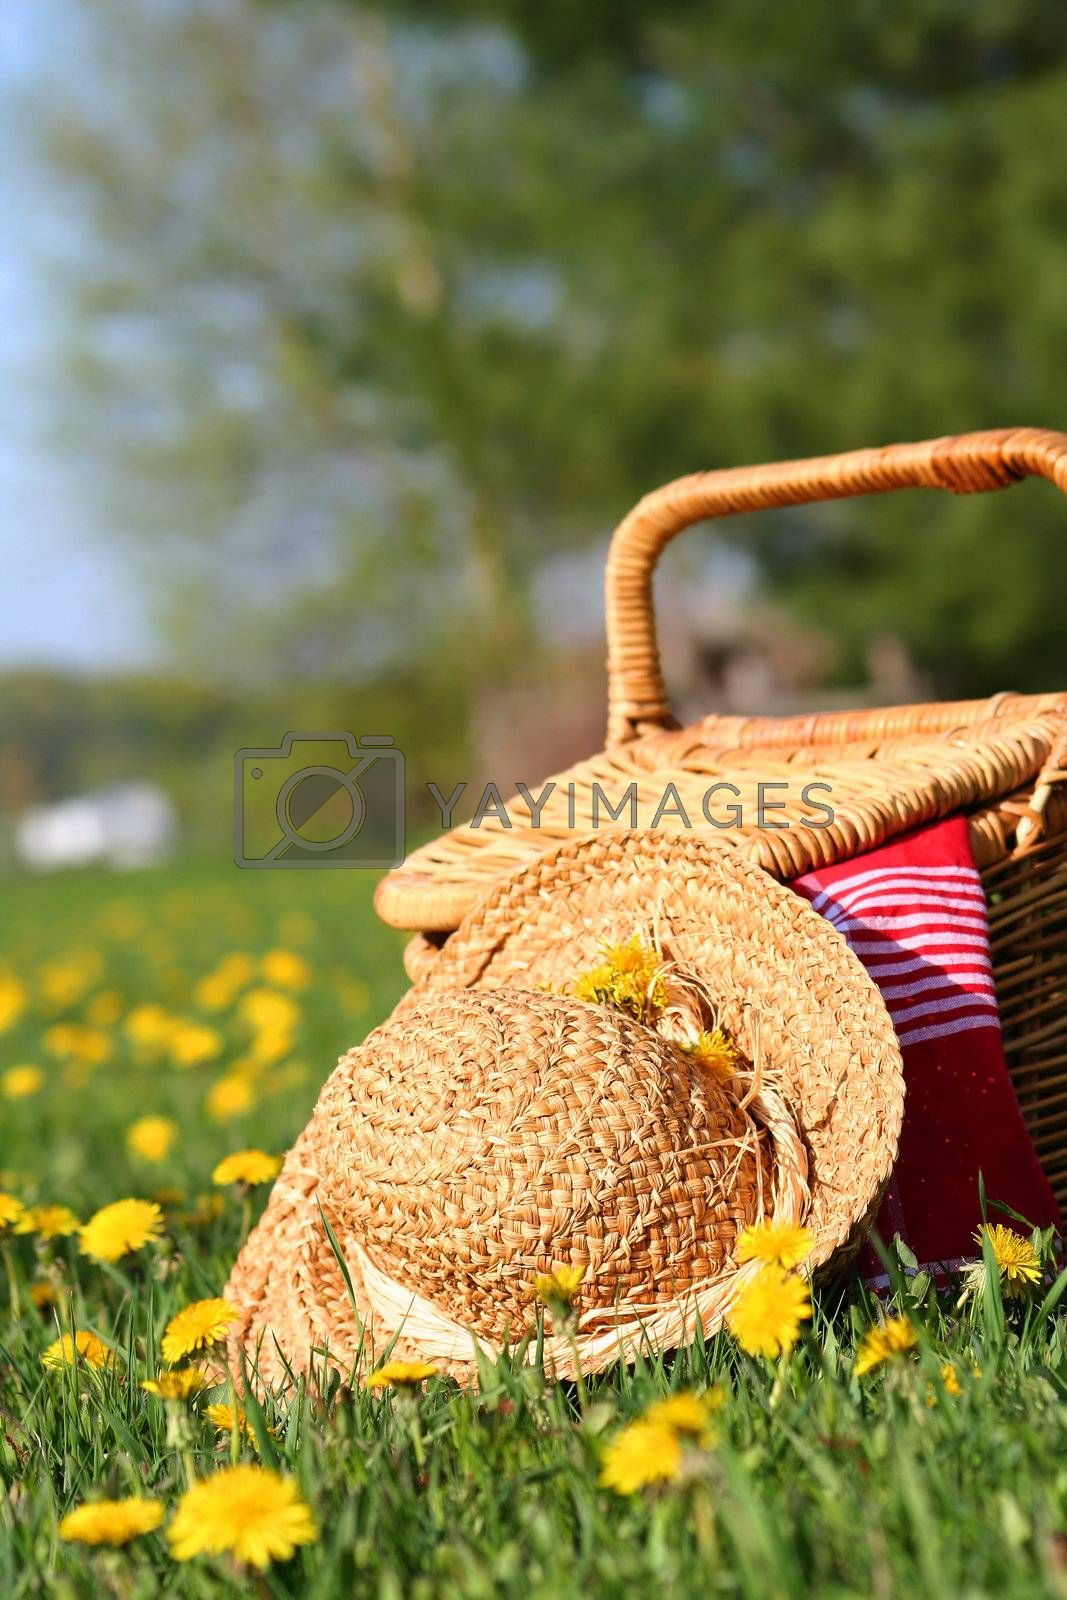 A picnic on the grass with wicker basket and sun hat